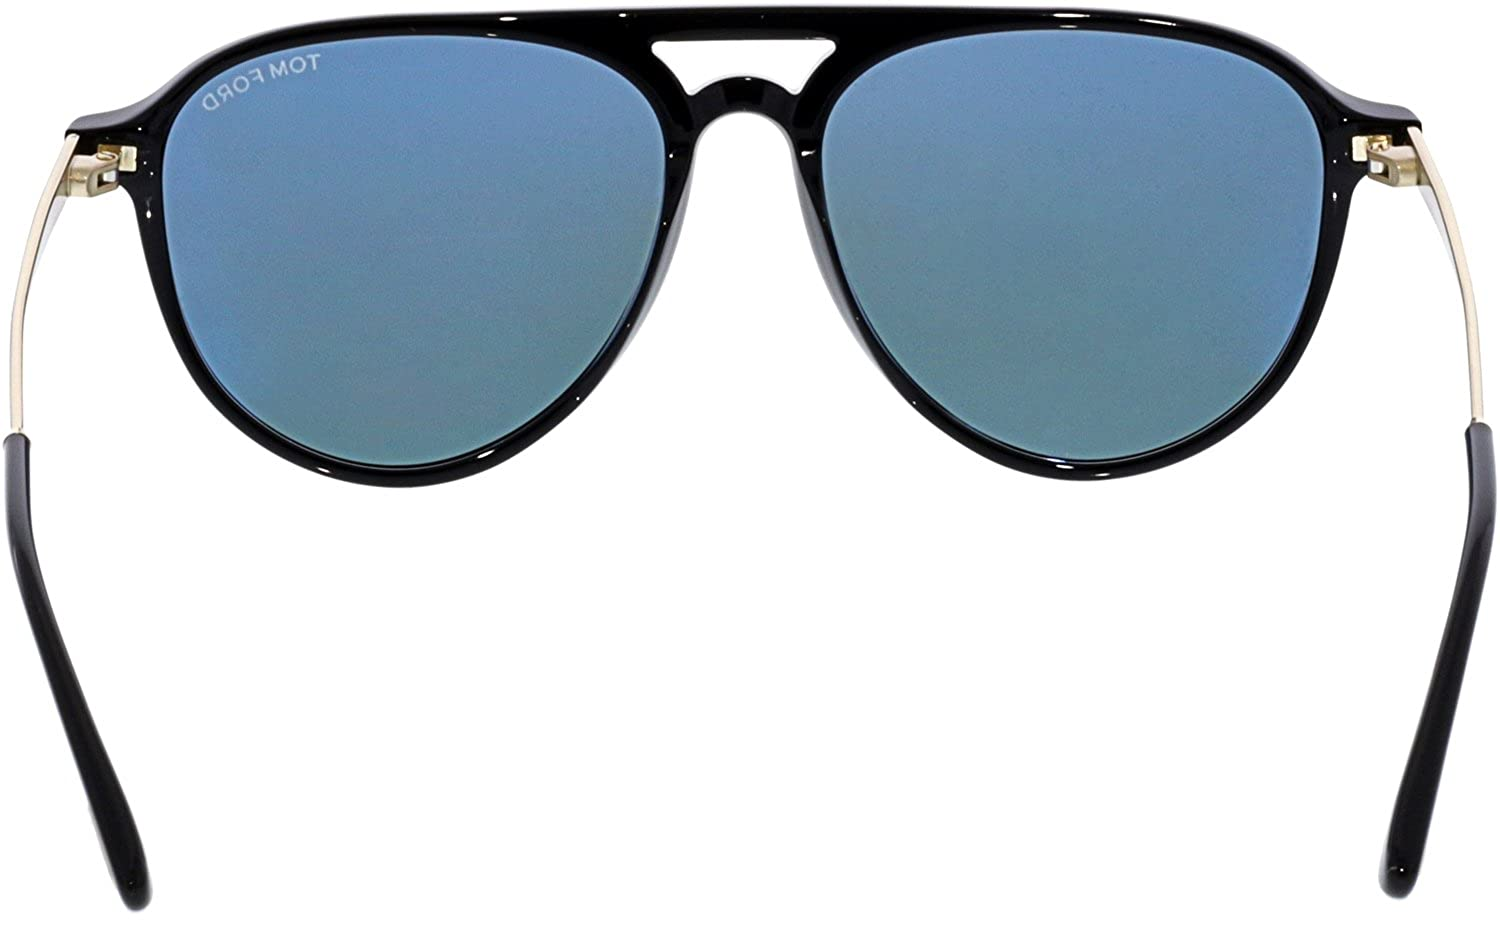 4ac557ff4e Sunglasses Tom Ford FT 0587 Carlo- 02 01V shiny black   blue at Amazon  Men s Clothing store